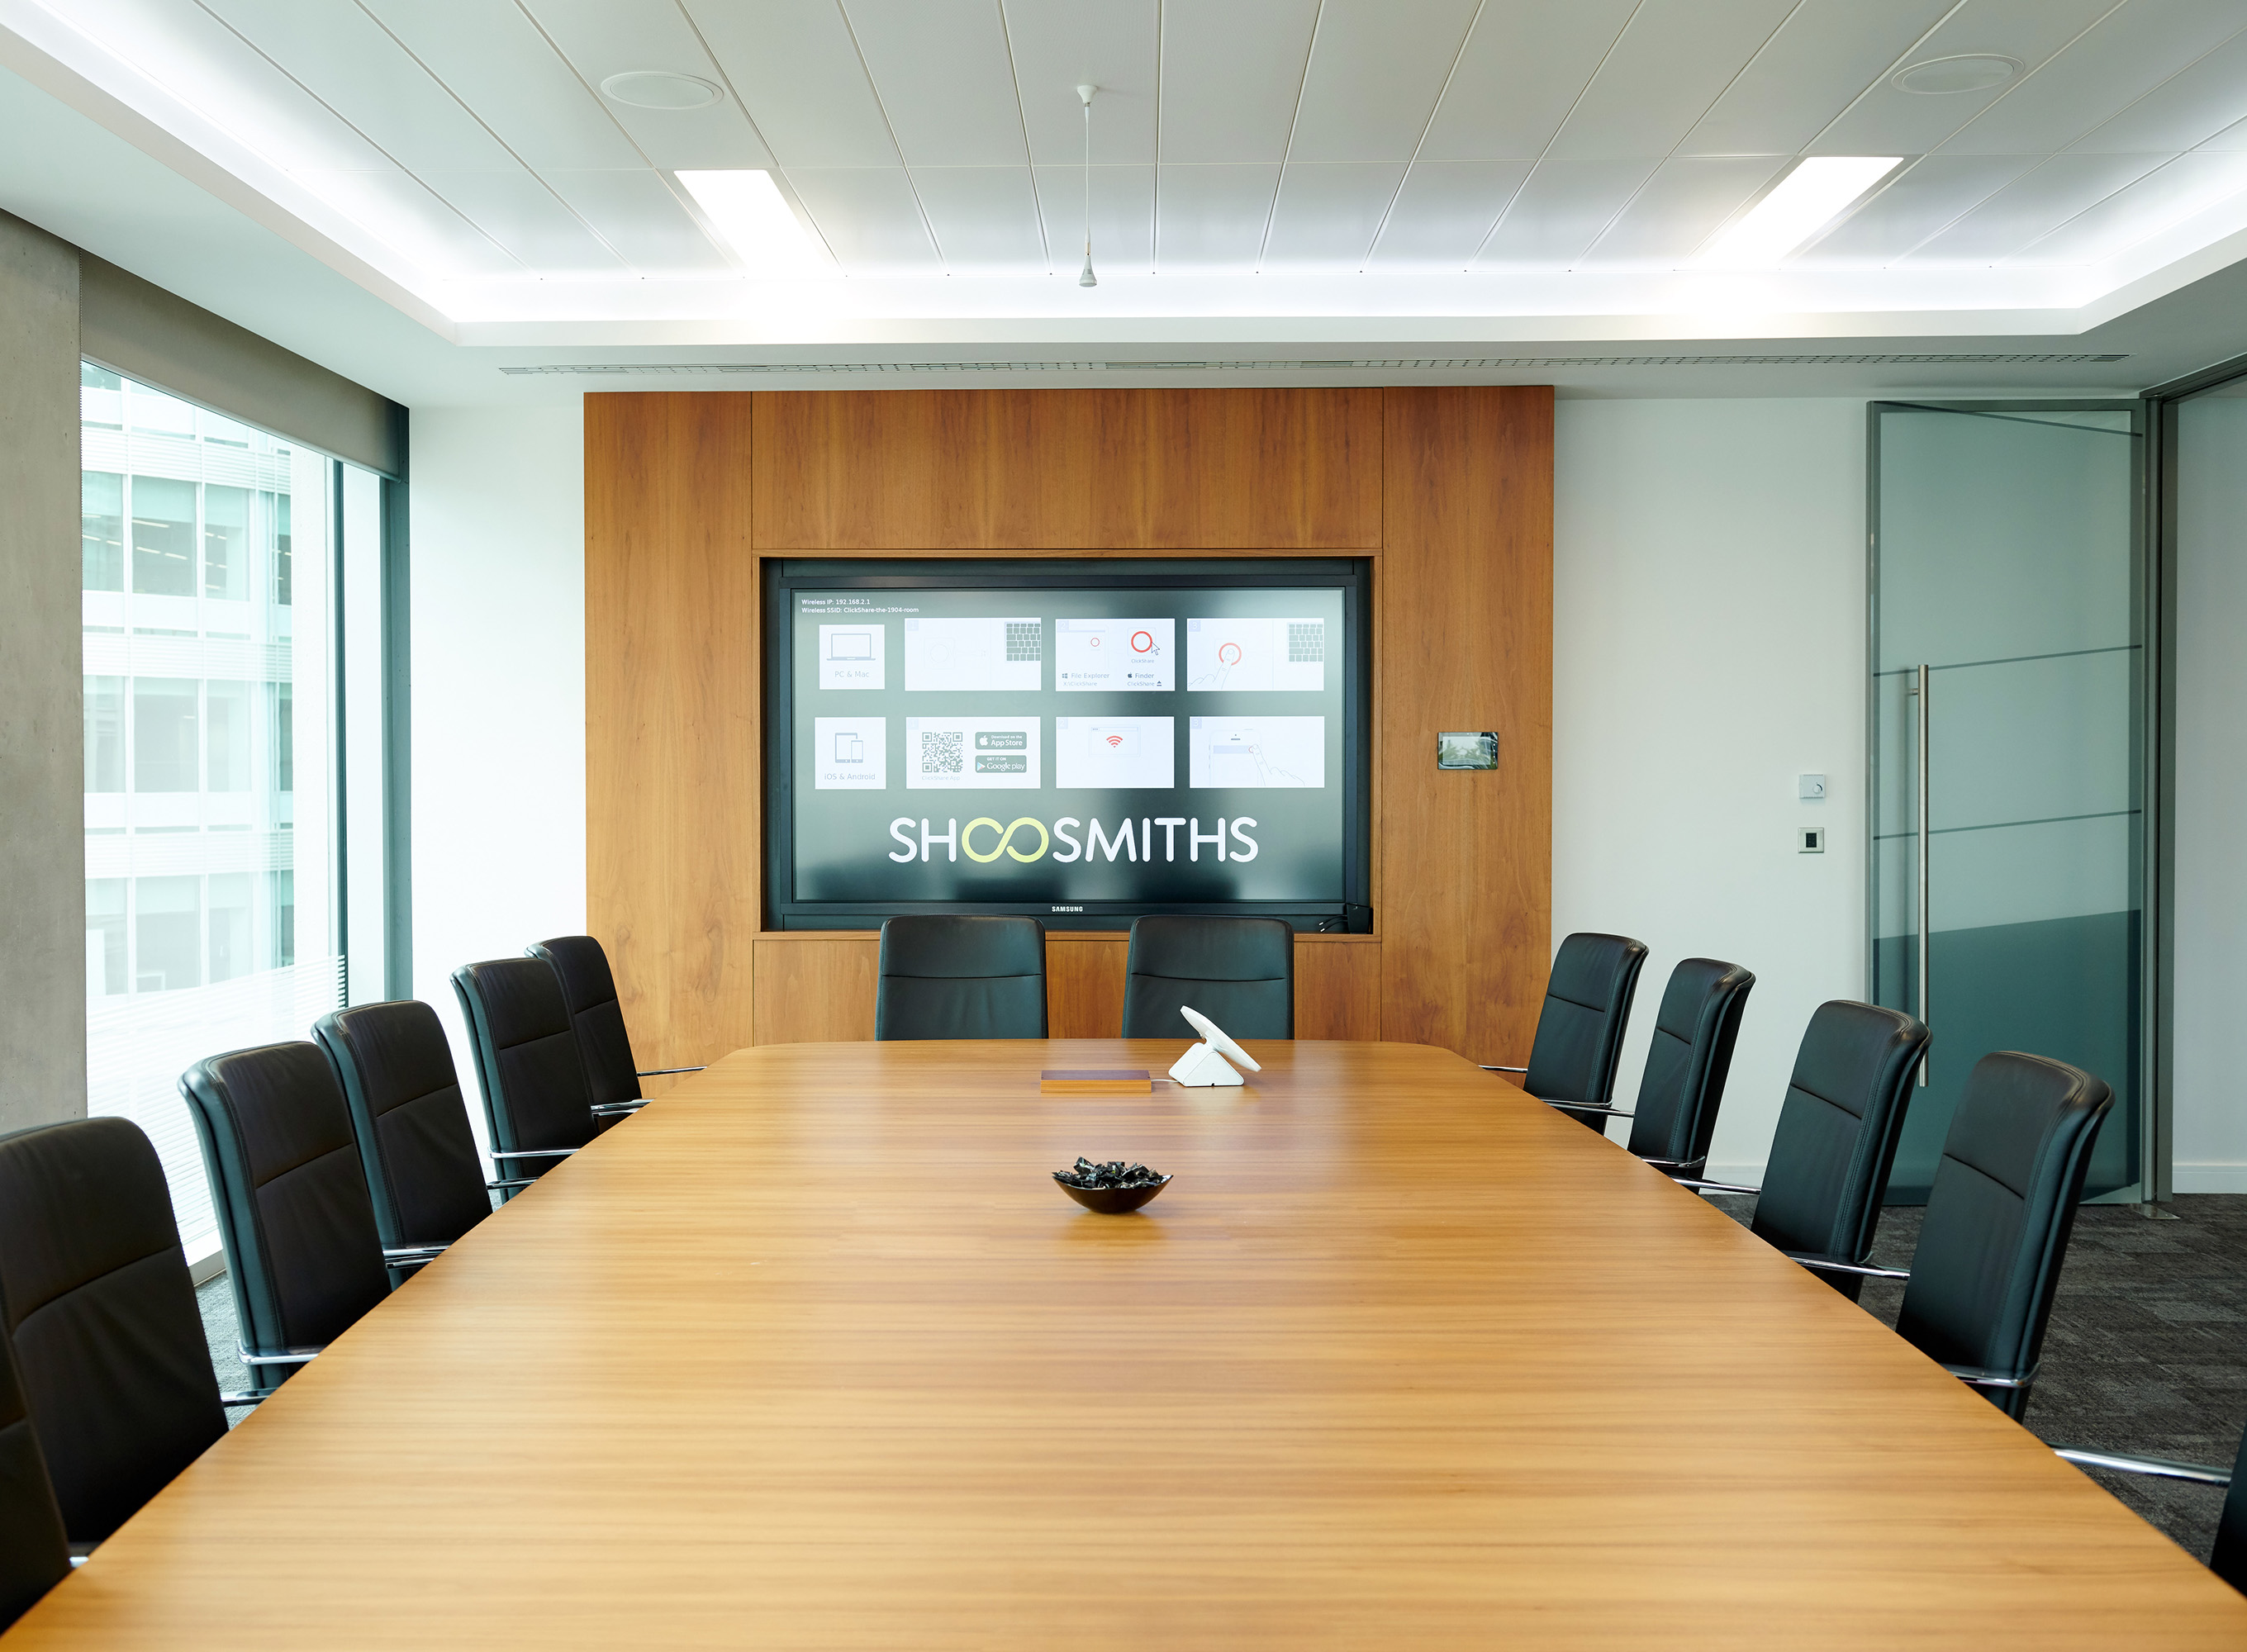 Shoosmiths – Best Recruiter - National/Large Regional Firm | Boardroom Meeting Room